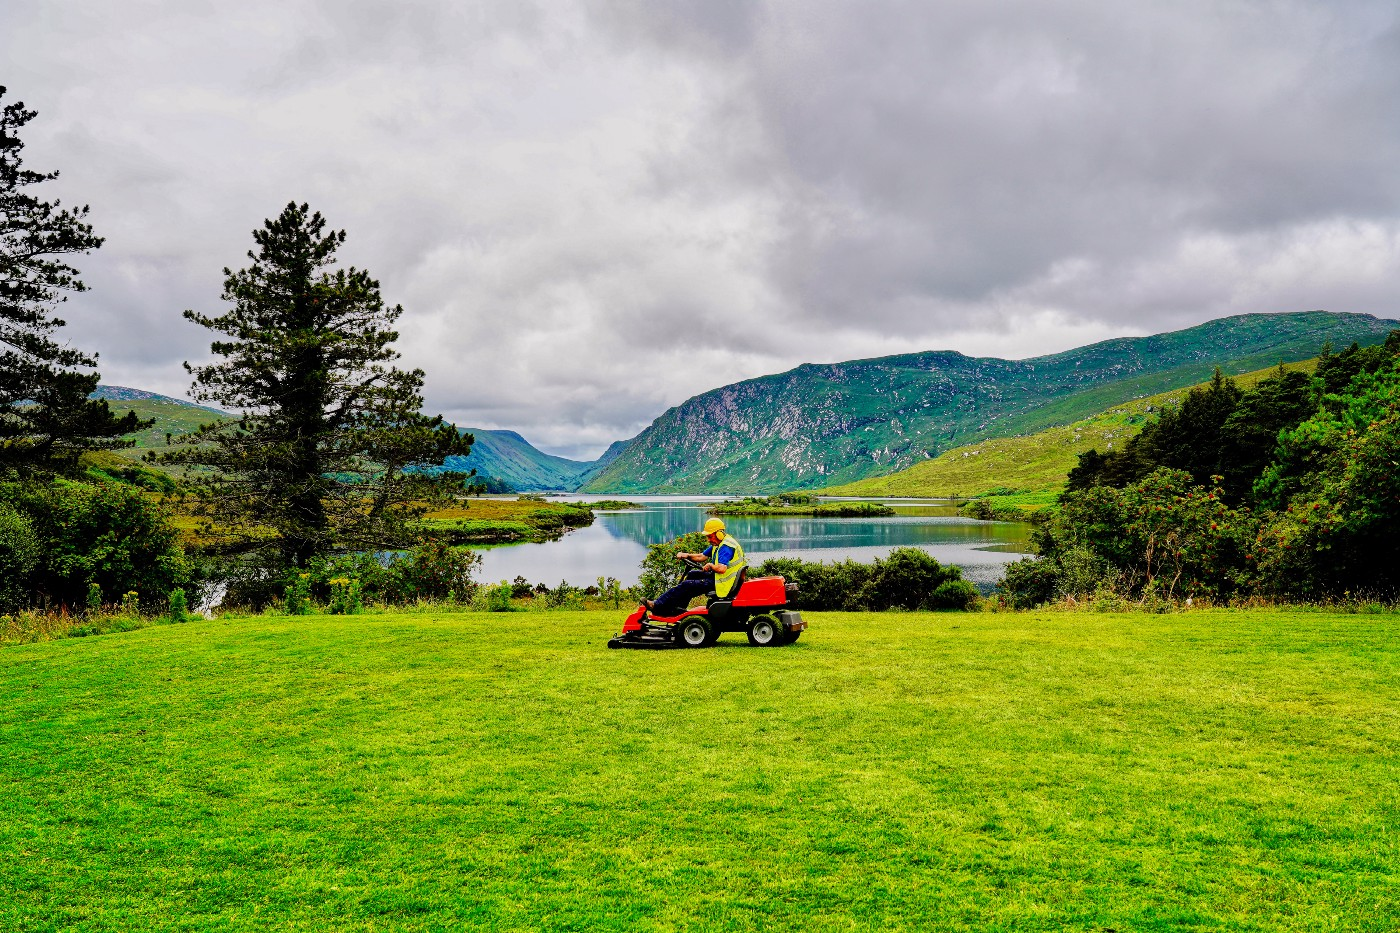 A man on a riding lawnmower over lush grass with a lake and mountain in the background